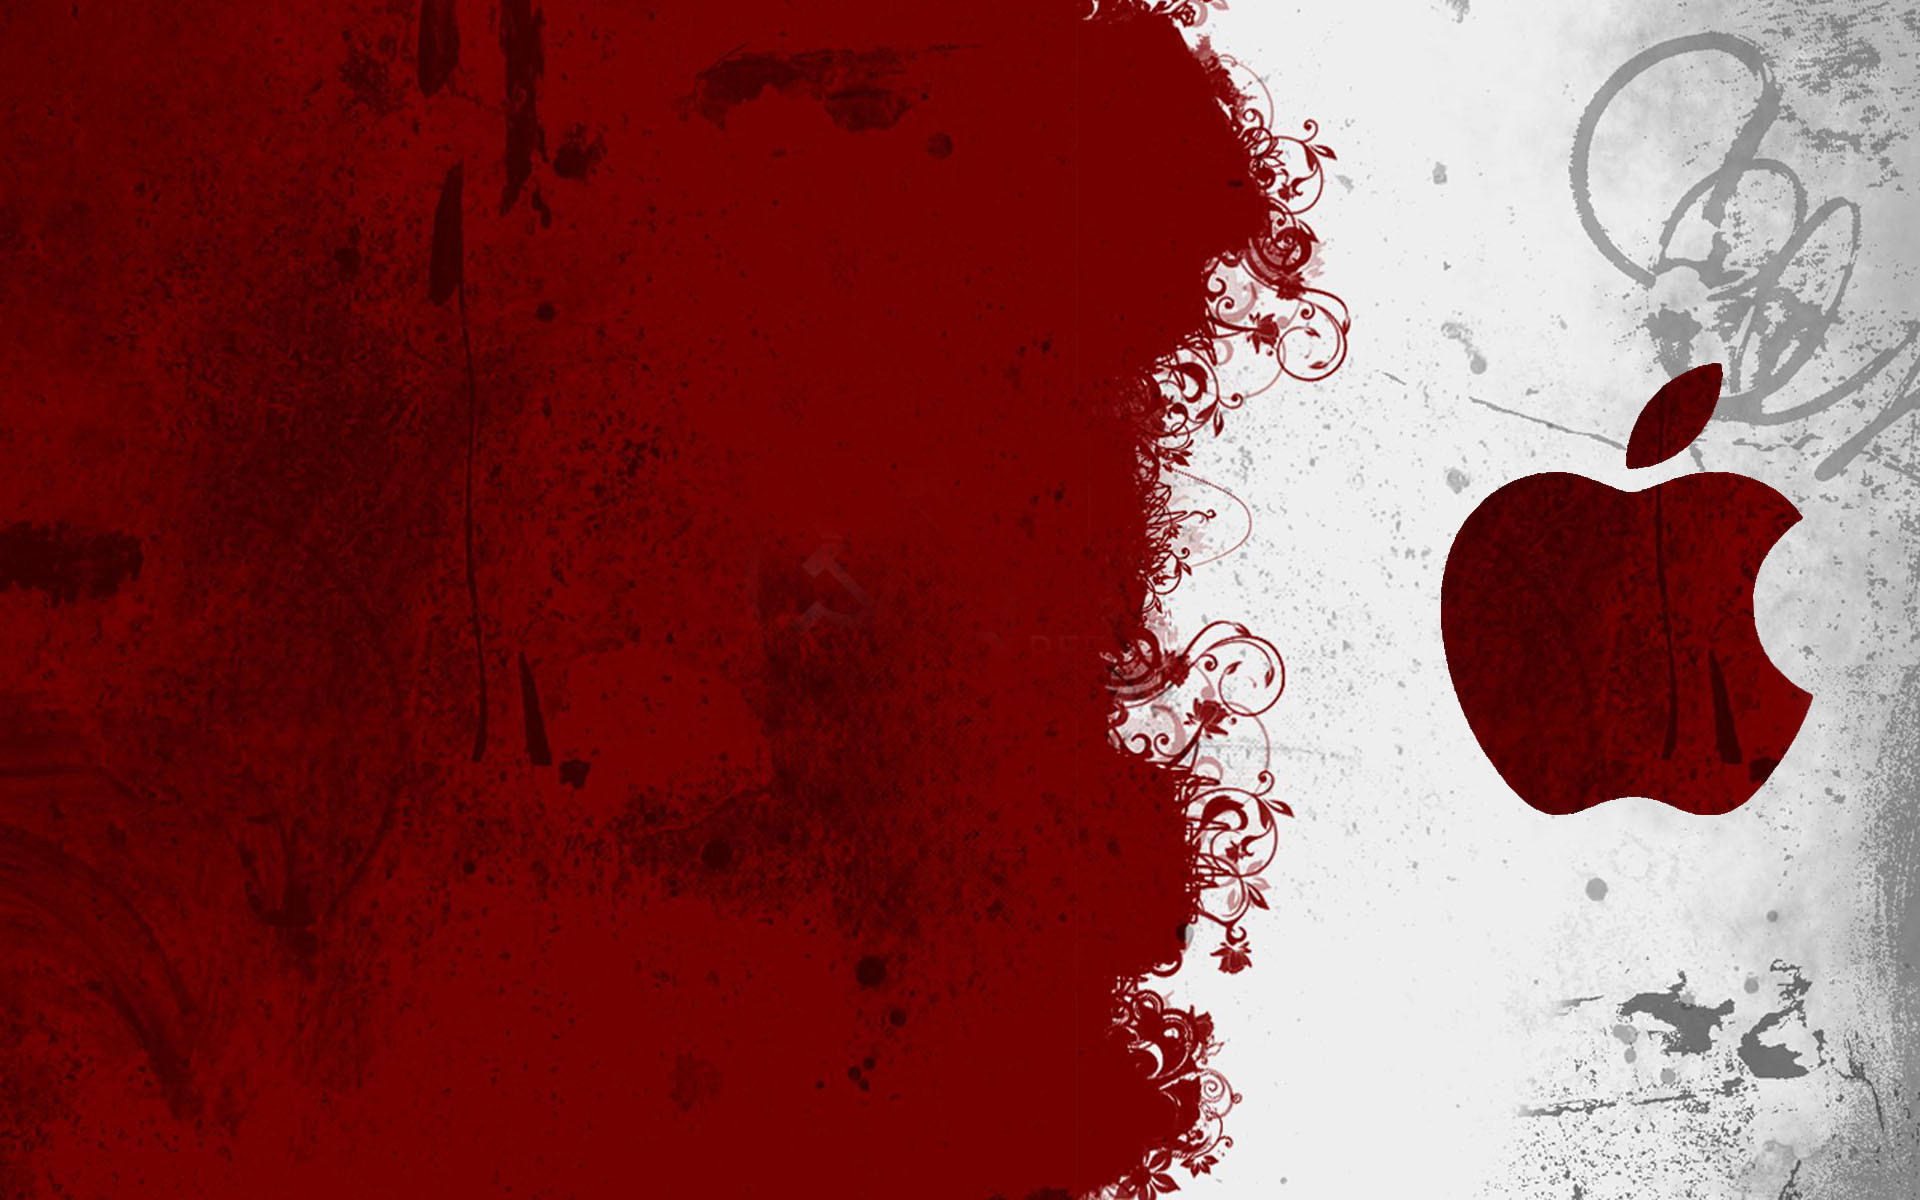 hd red wallpaper 183��